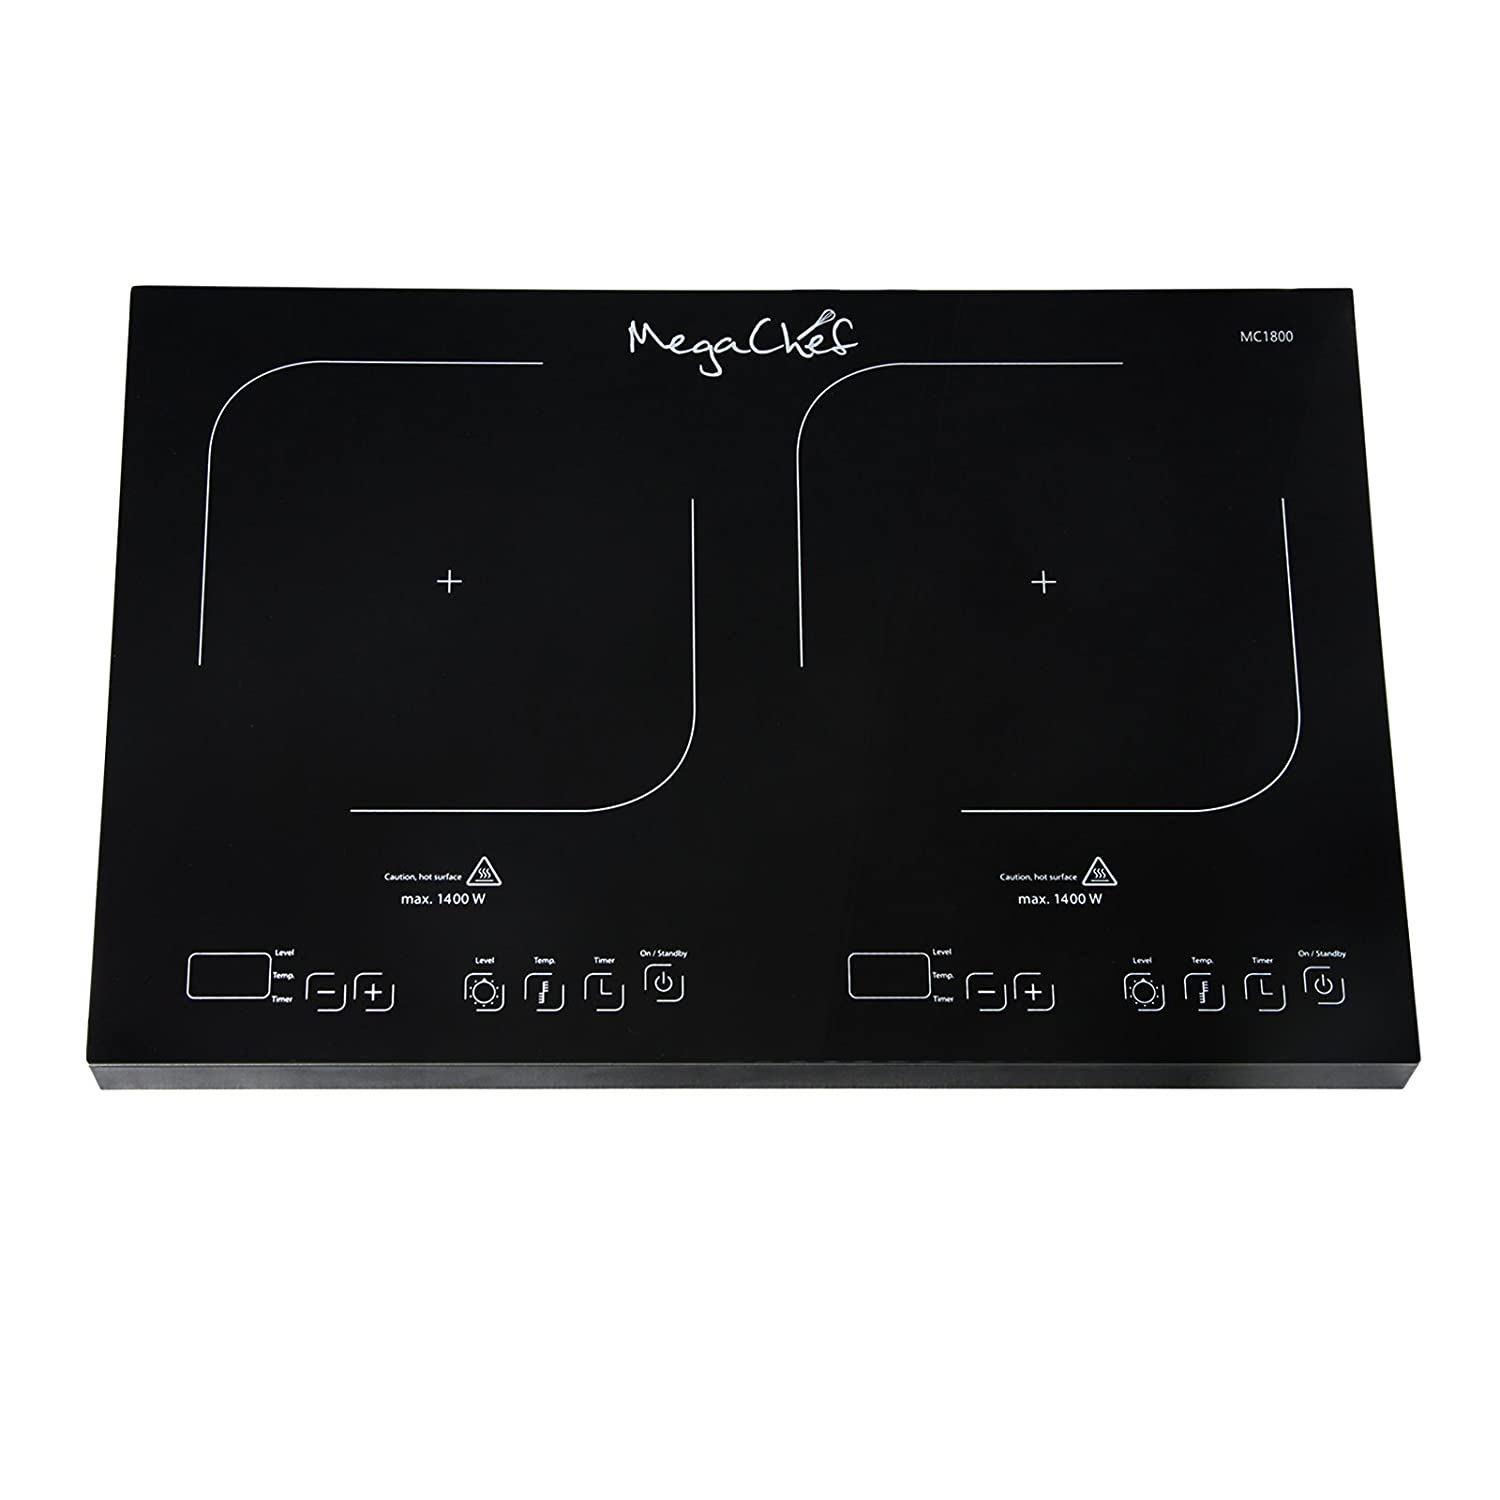 MegaChef MC1800 Portable Dual Burner Powersharing Induction Cooktop